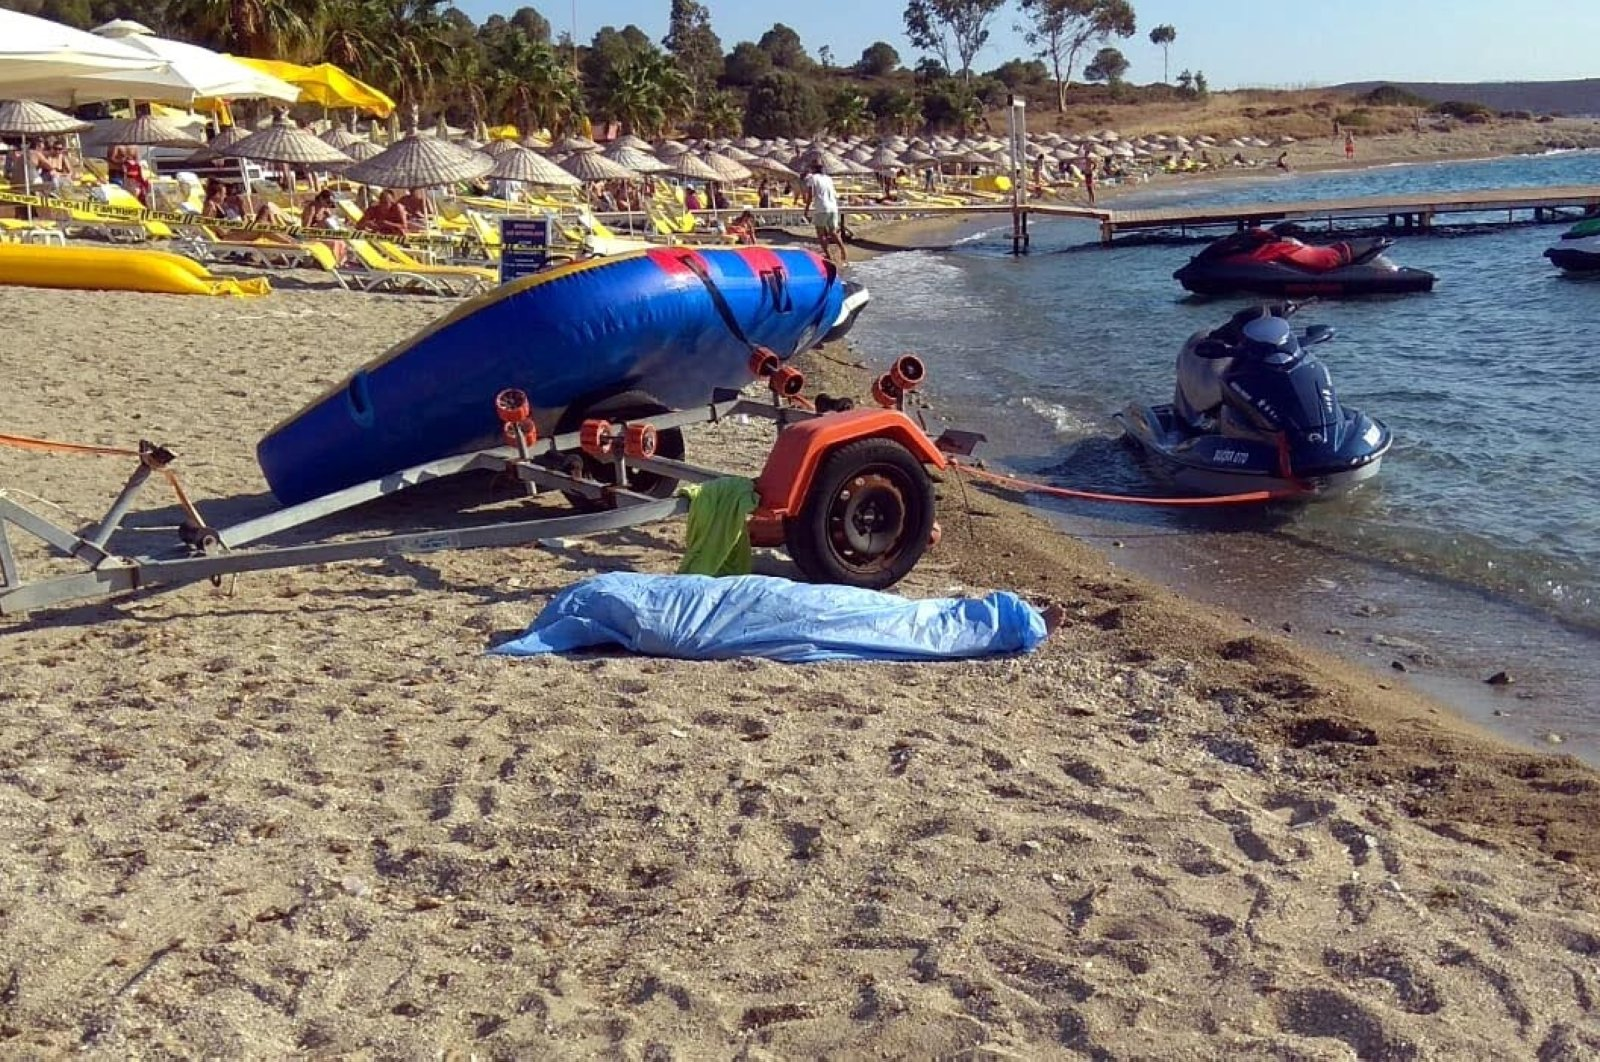 The capsized boat rests on the shore after the accident in the Foça district of Izmir, Turkey, Aug. 2, 2020. (DHA Photo)